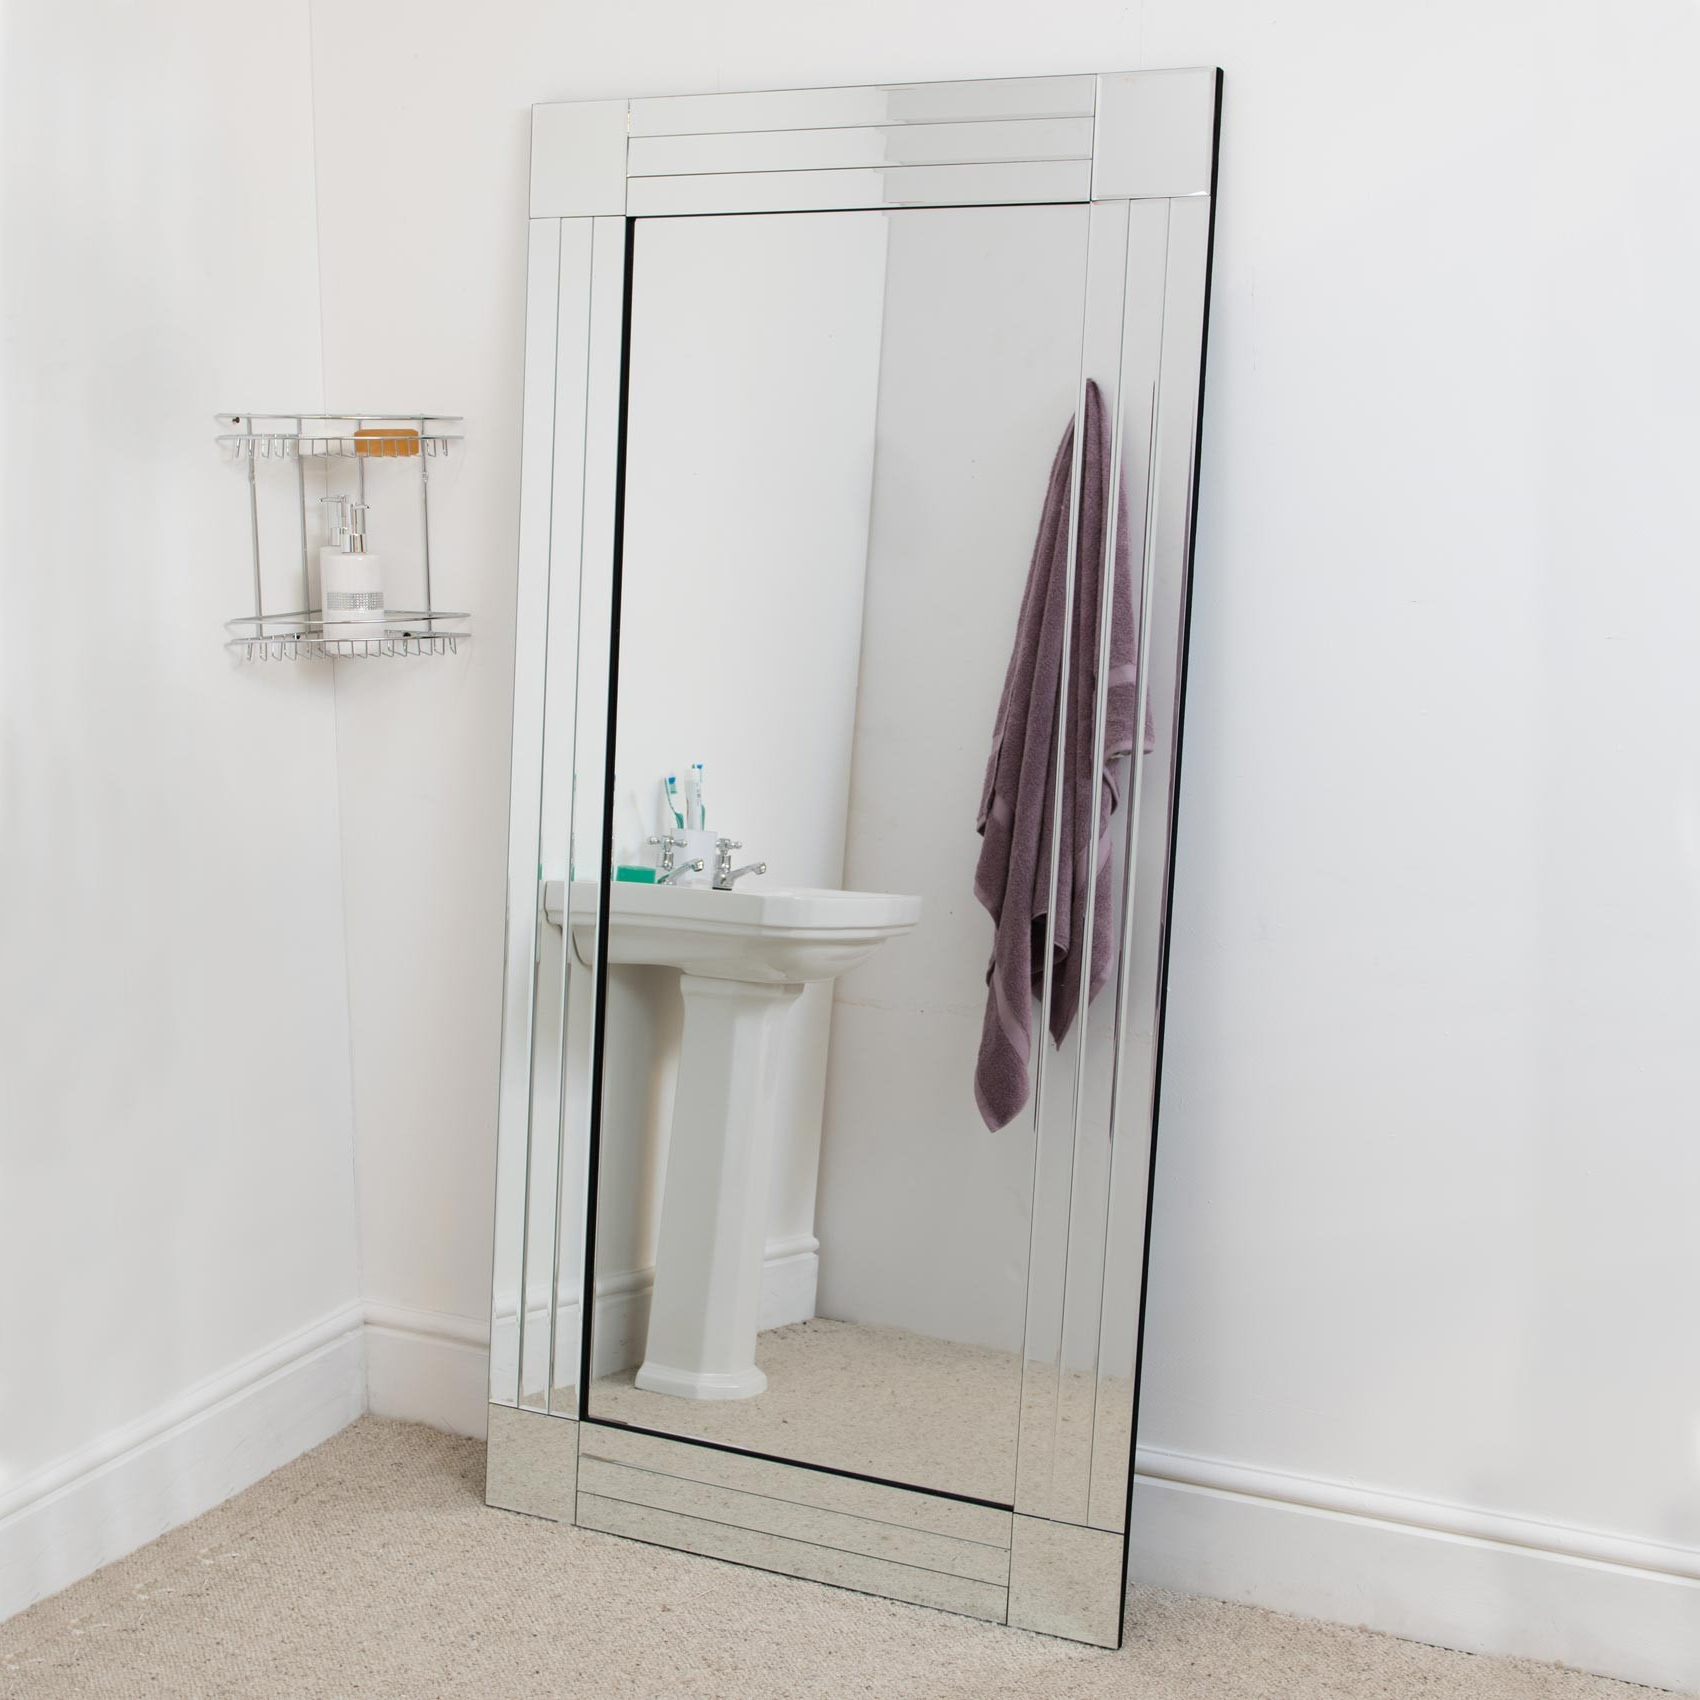 Large Bathroom Wall Mirrors Within Most Current Details About Large Bathroom Bevelled Edge Venetian Wall Mirror 5Ft9 X 2Ft9 174Cm X 85Cm (View 15 of 20)